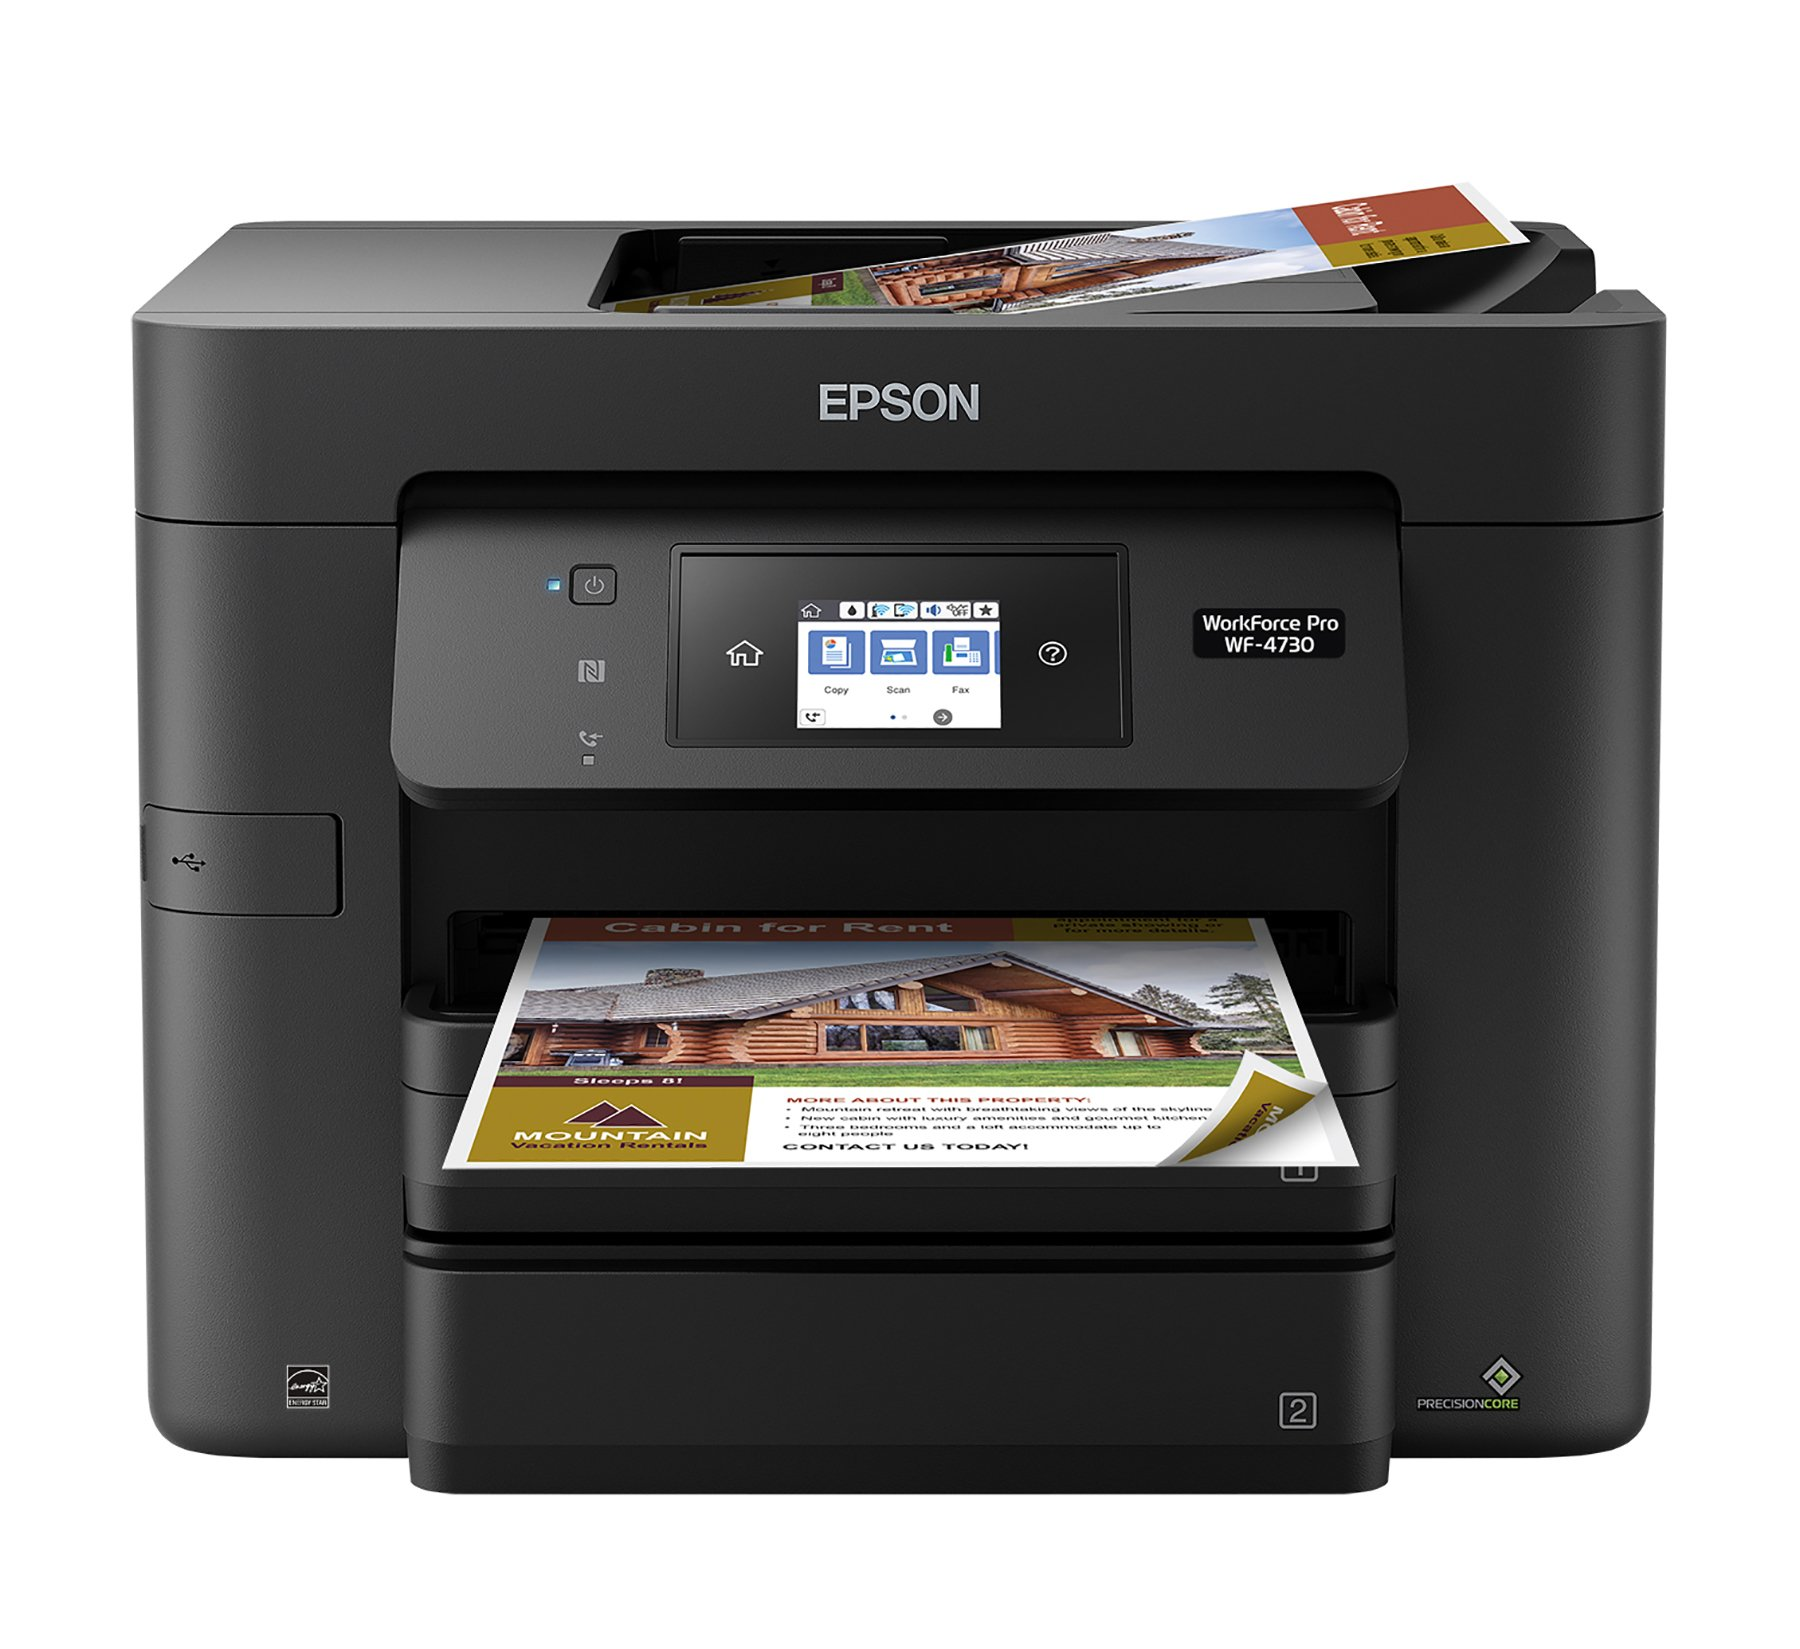 Epson WorkForce Pro WF-4730 Wireless All-in-One Color Inkjet Printer, Copier, Scanner with Wi-Fi Direct by Epson